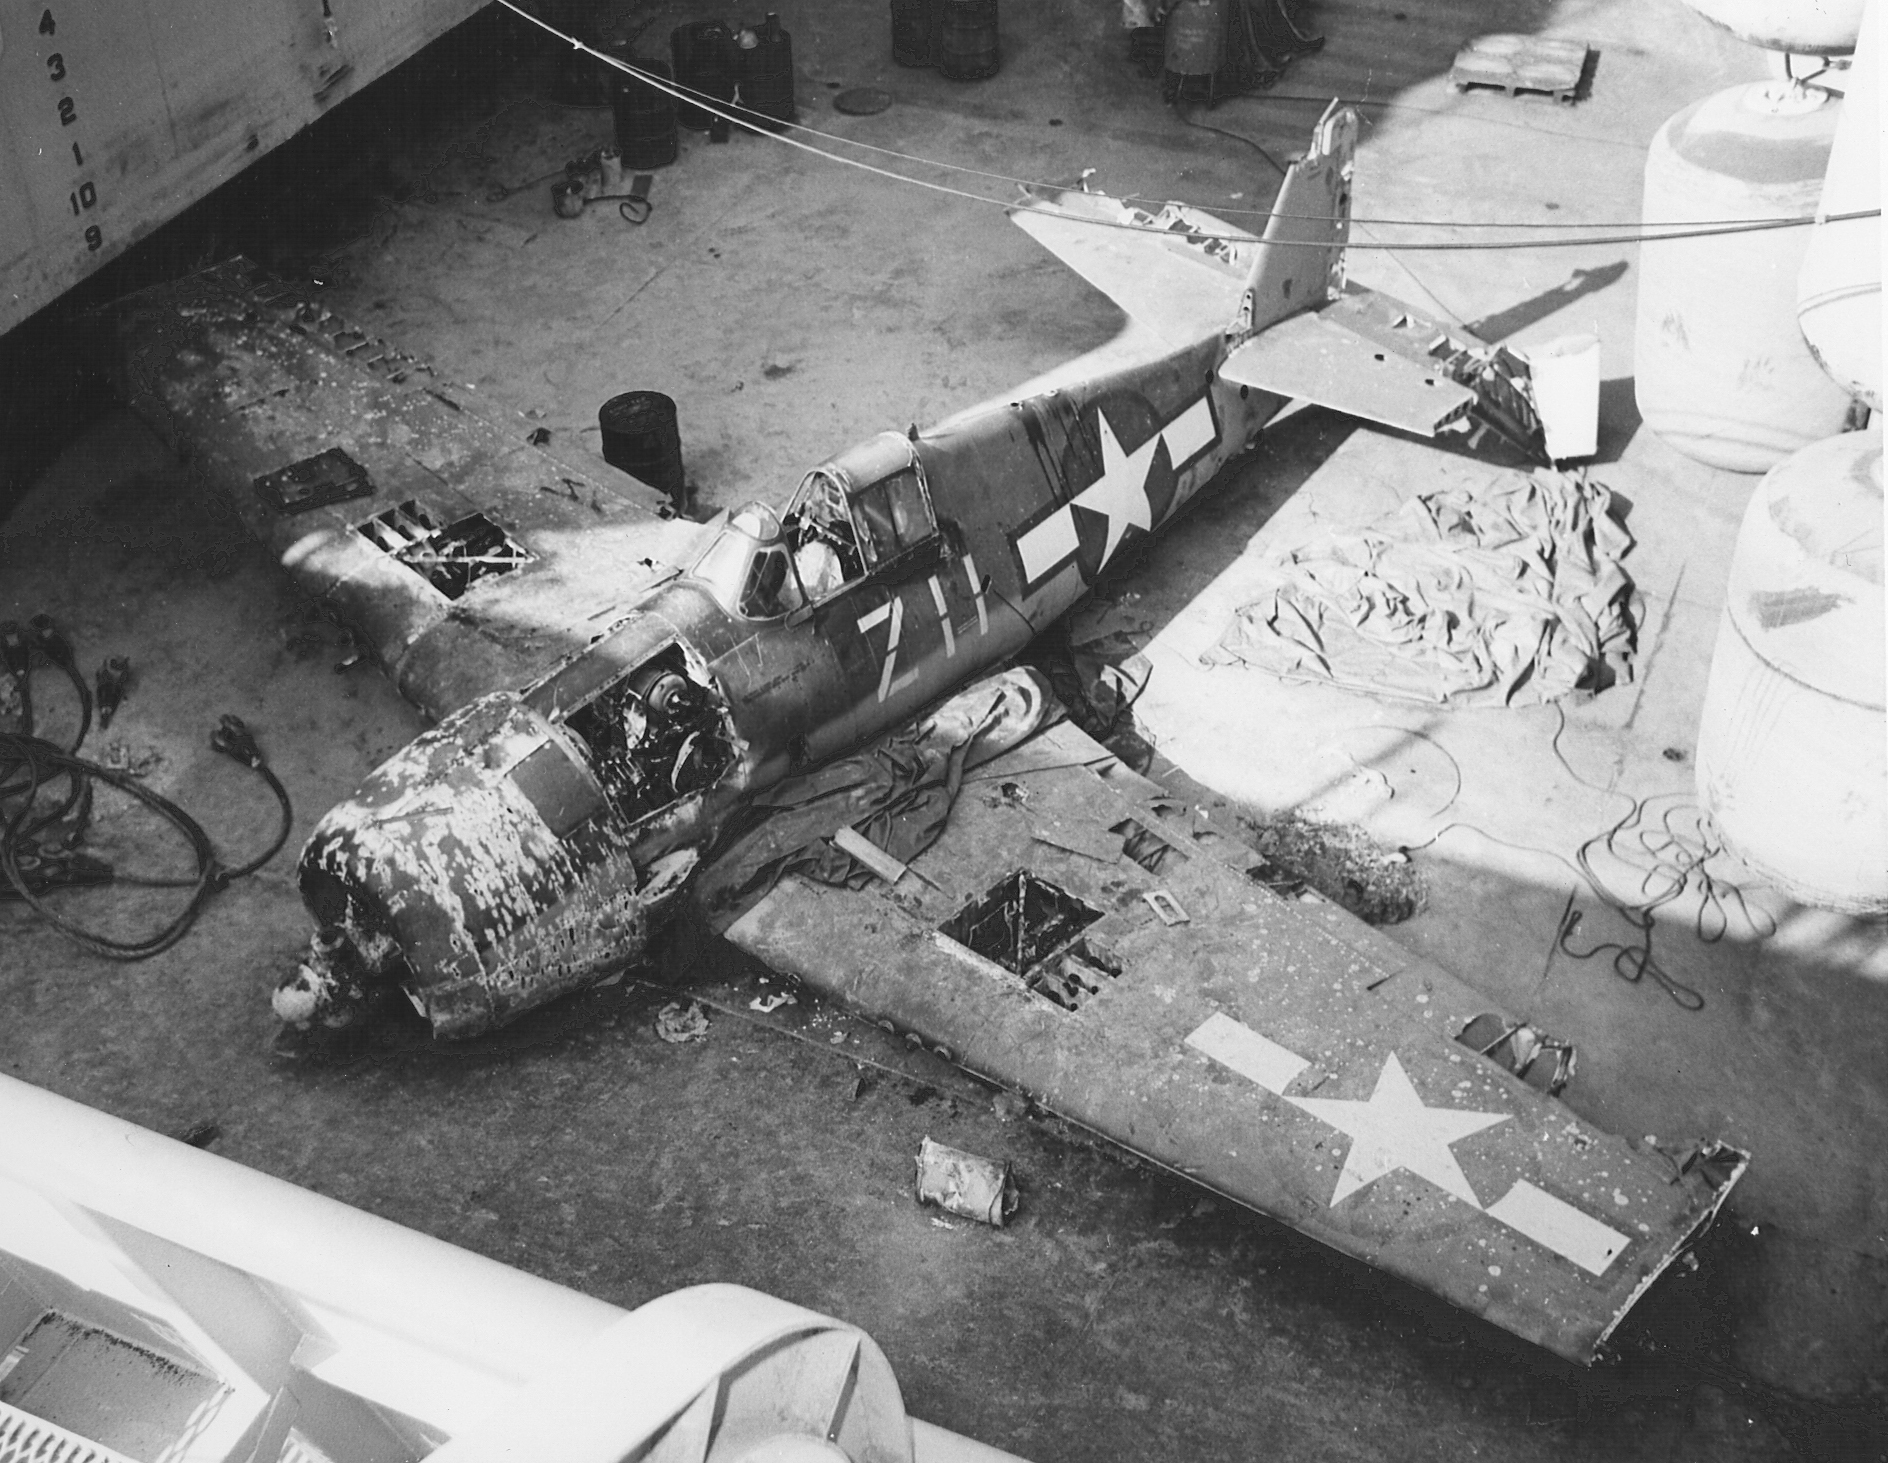 F6F-3 Hellcat aircraft from VF-21 that had ditched in the Pacific Ocean off the coast of San Diego, CA, January 25, 1944. It was raised by the salvage team of the USS White Sands in October 1970, and placed at NAS North Island, CA. Dan Farnham is hoping to find Bu No 79895, flown by Ensign John Davis in Kwajalein.